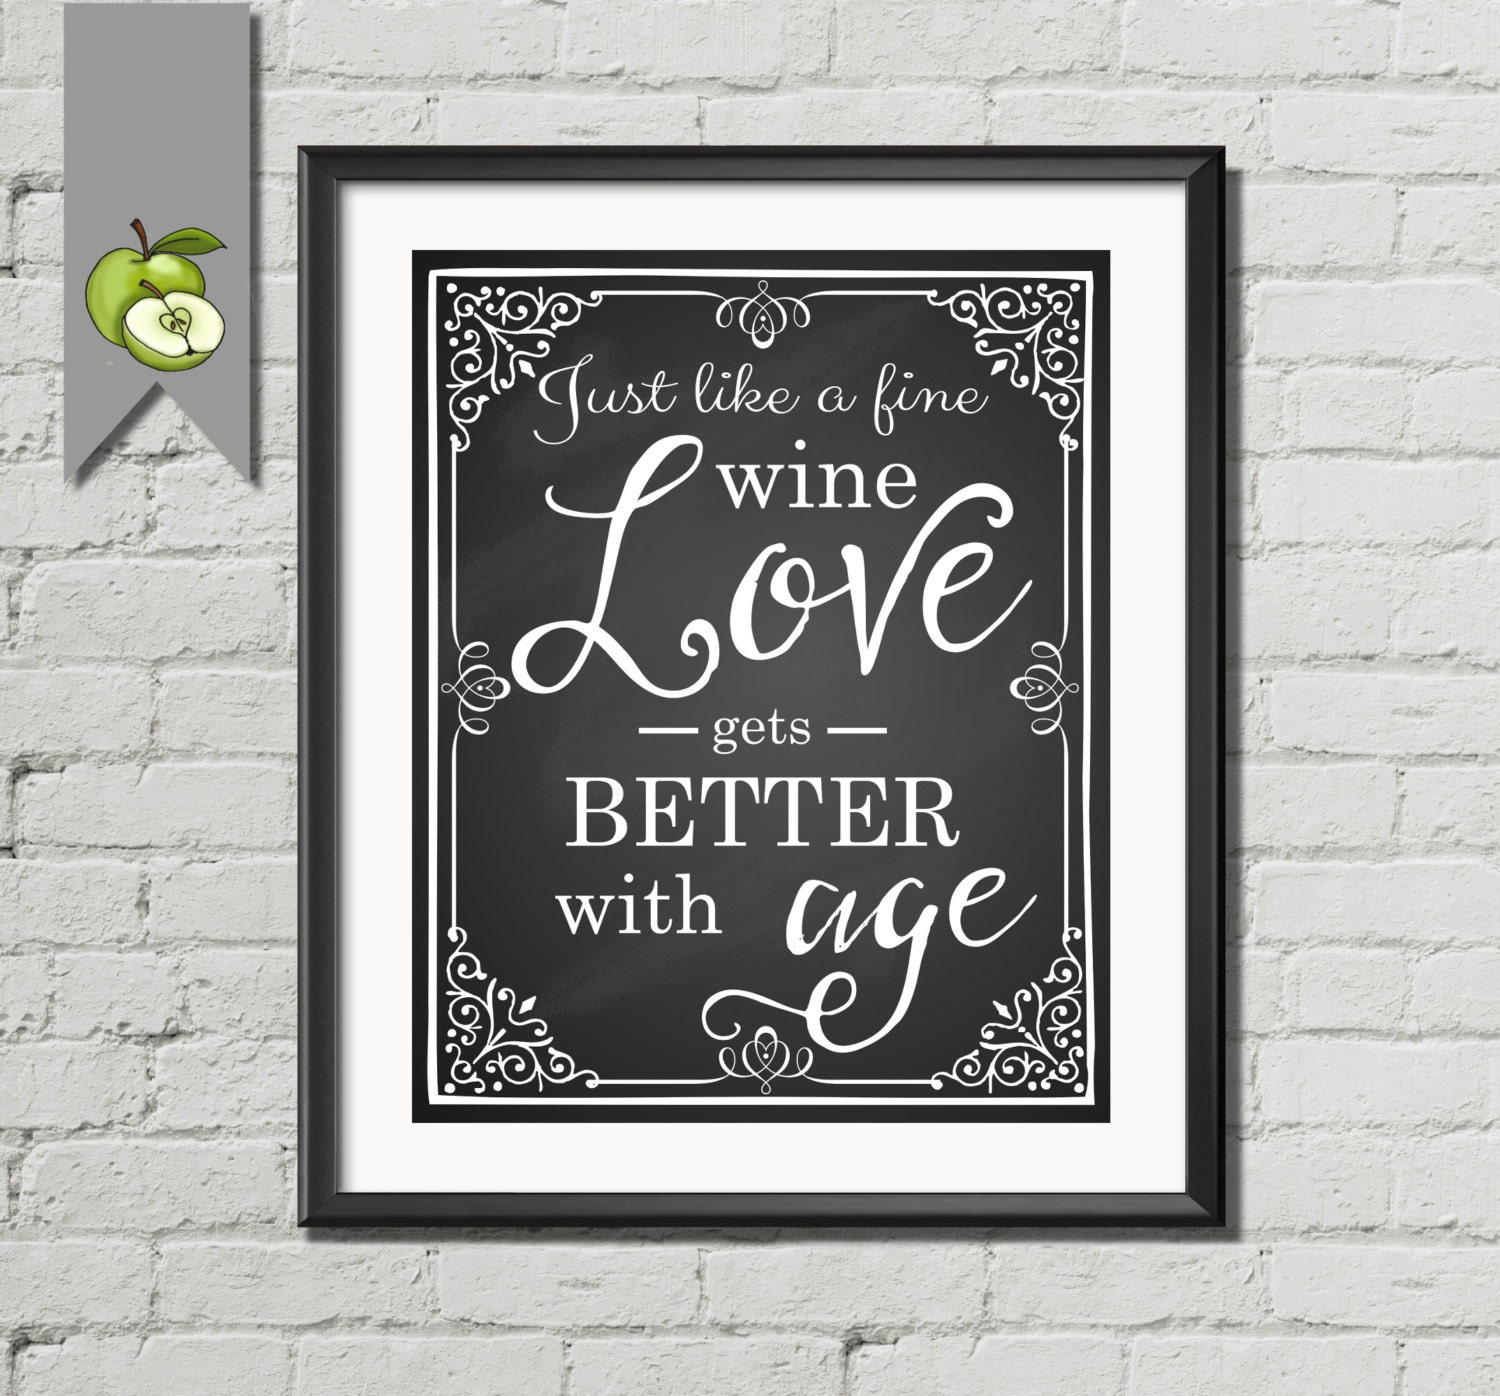 Just Like A Fine Wine Love Gets Better With Age Printable